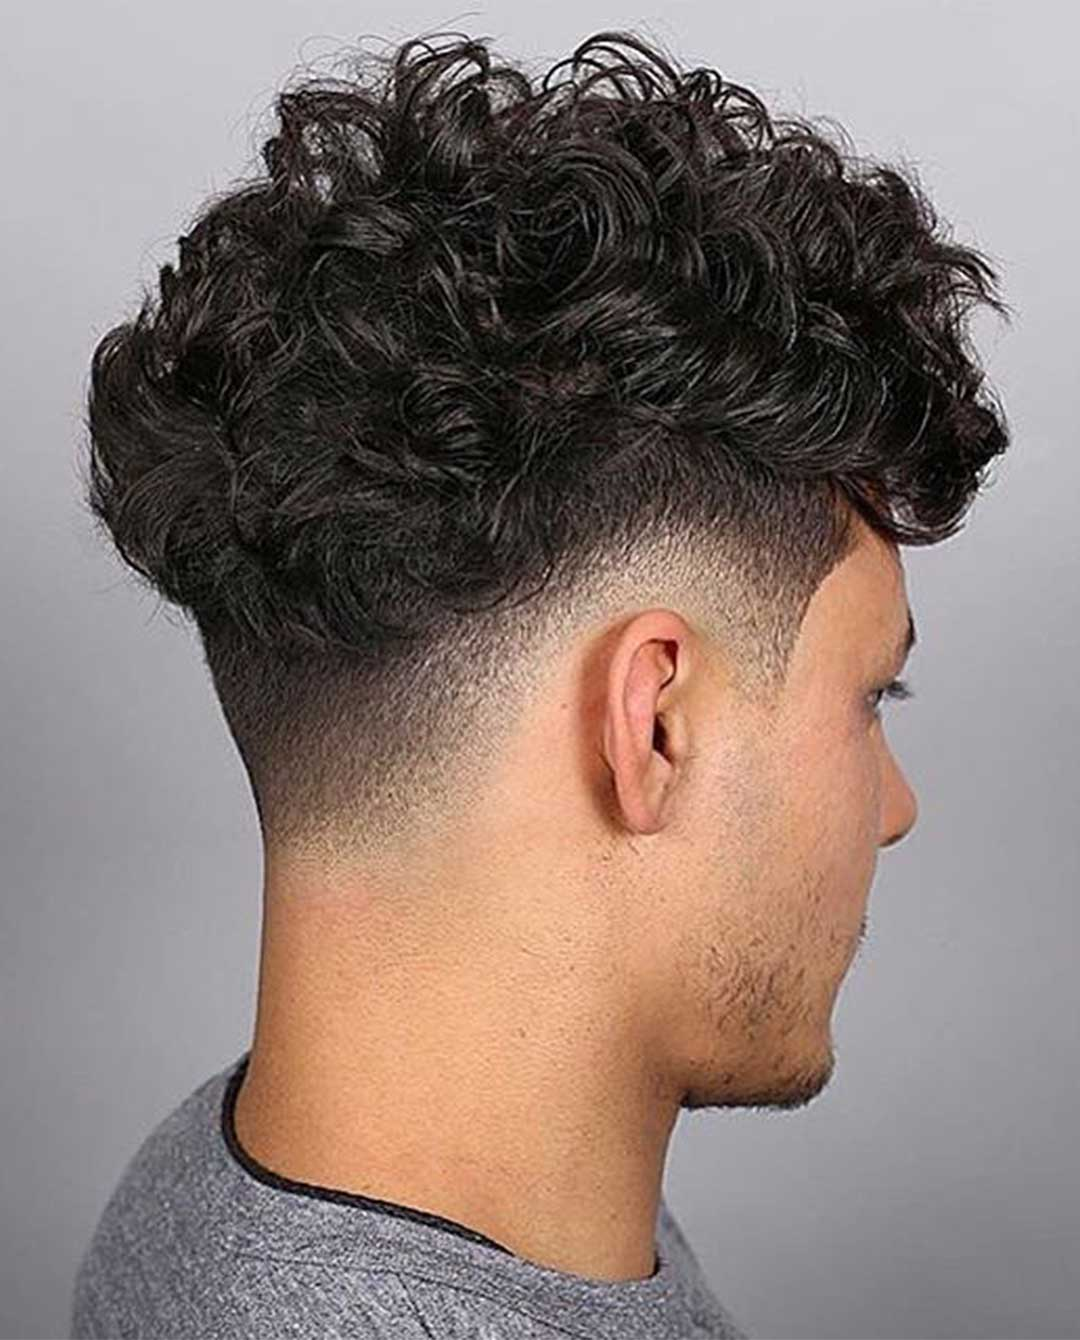 Curly Top with Low Fade